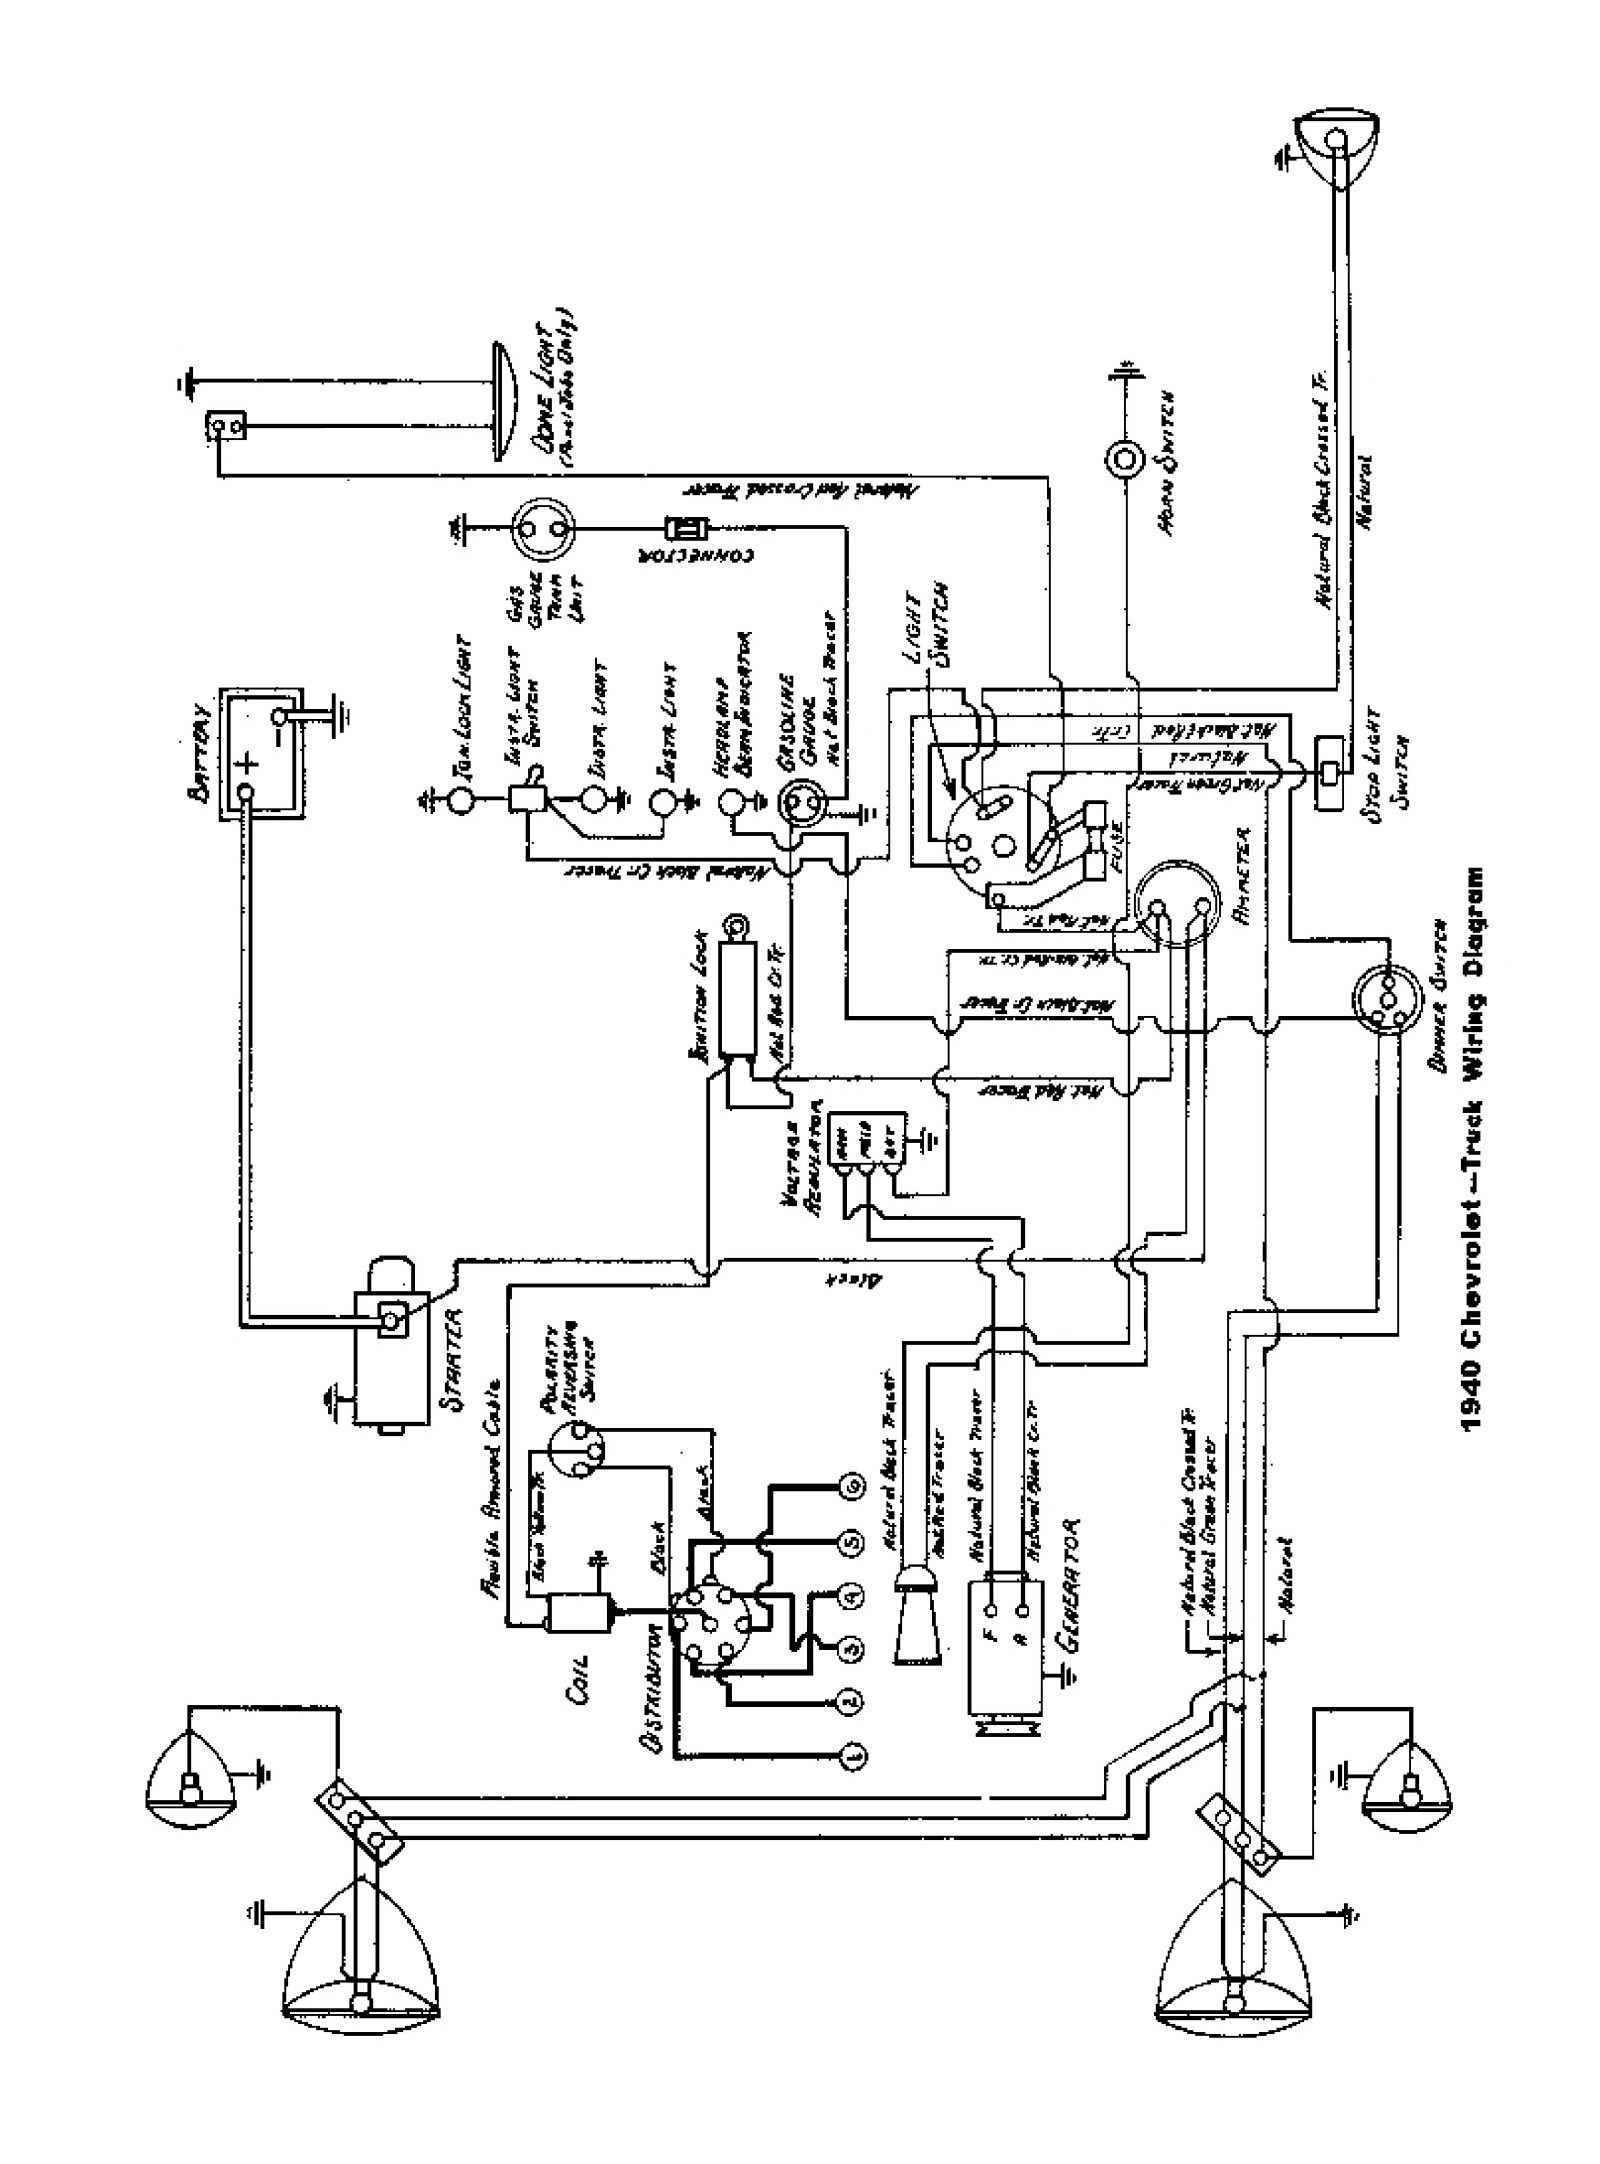 1979 Chevy Truck Wiring Diagram All Generation Wiring Schematics ...